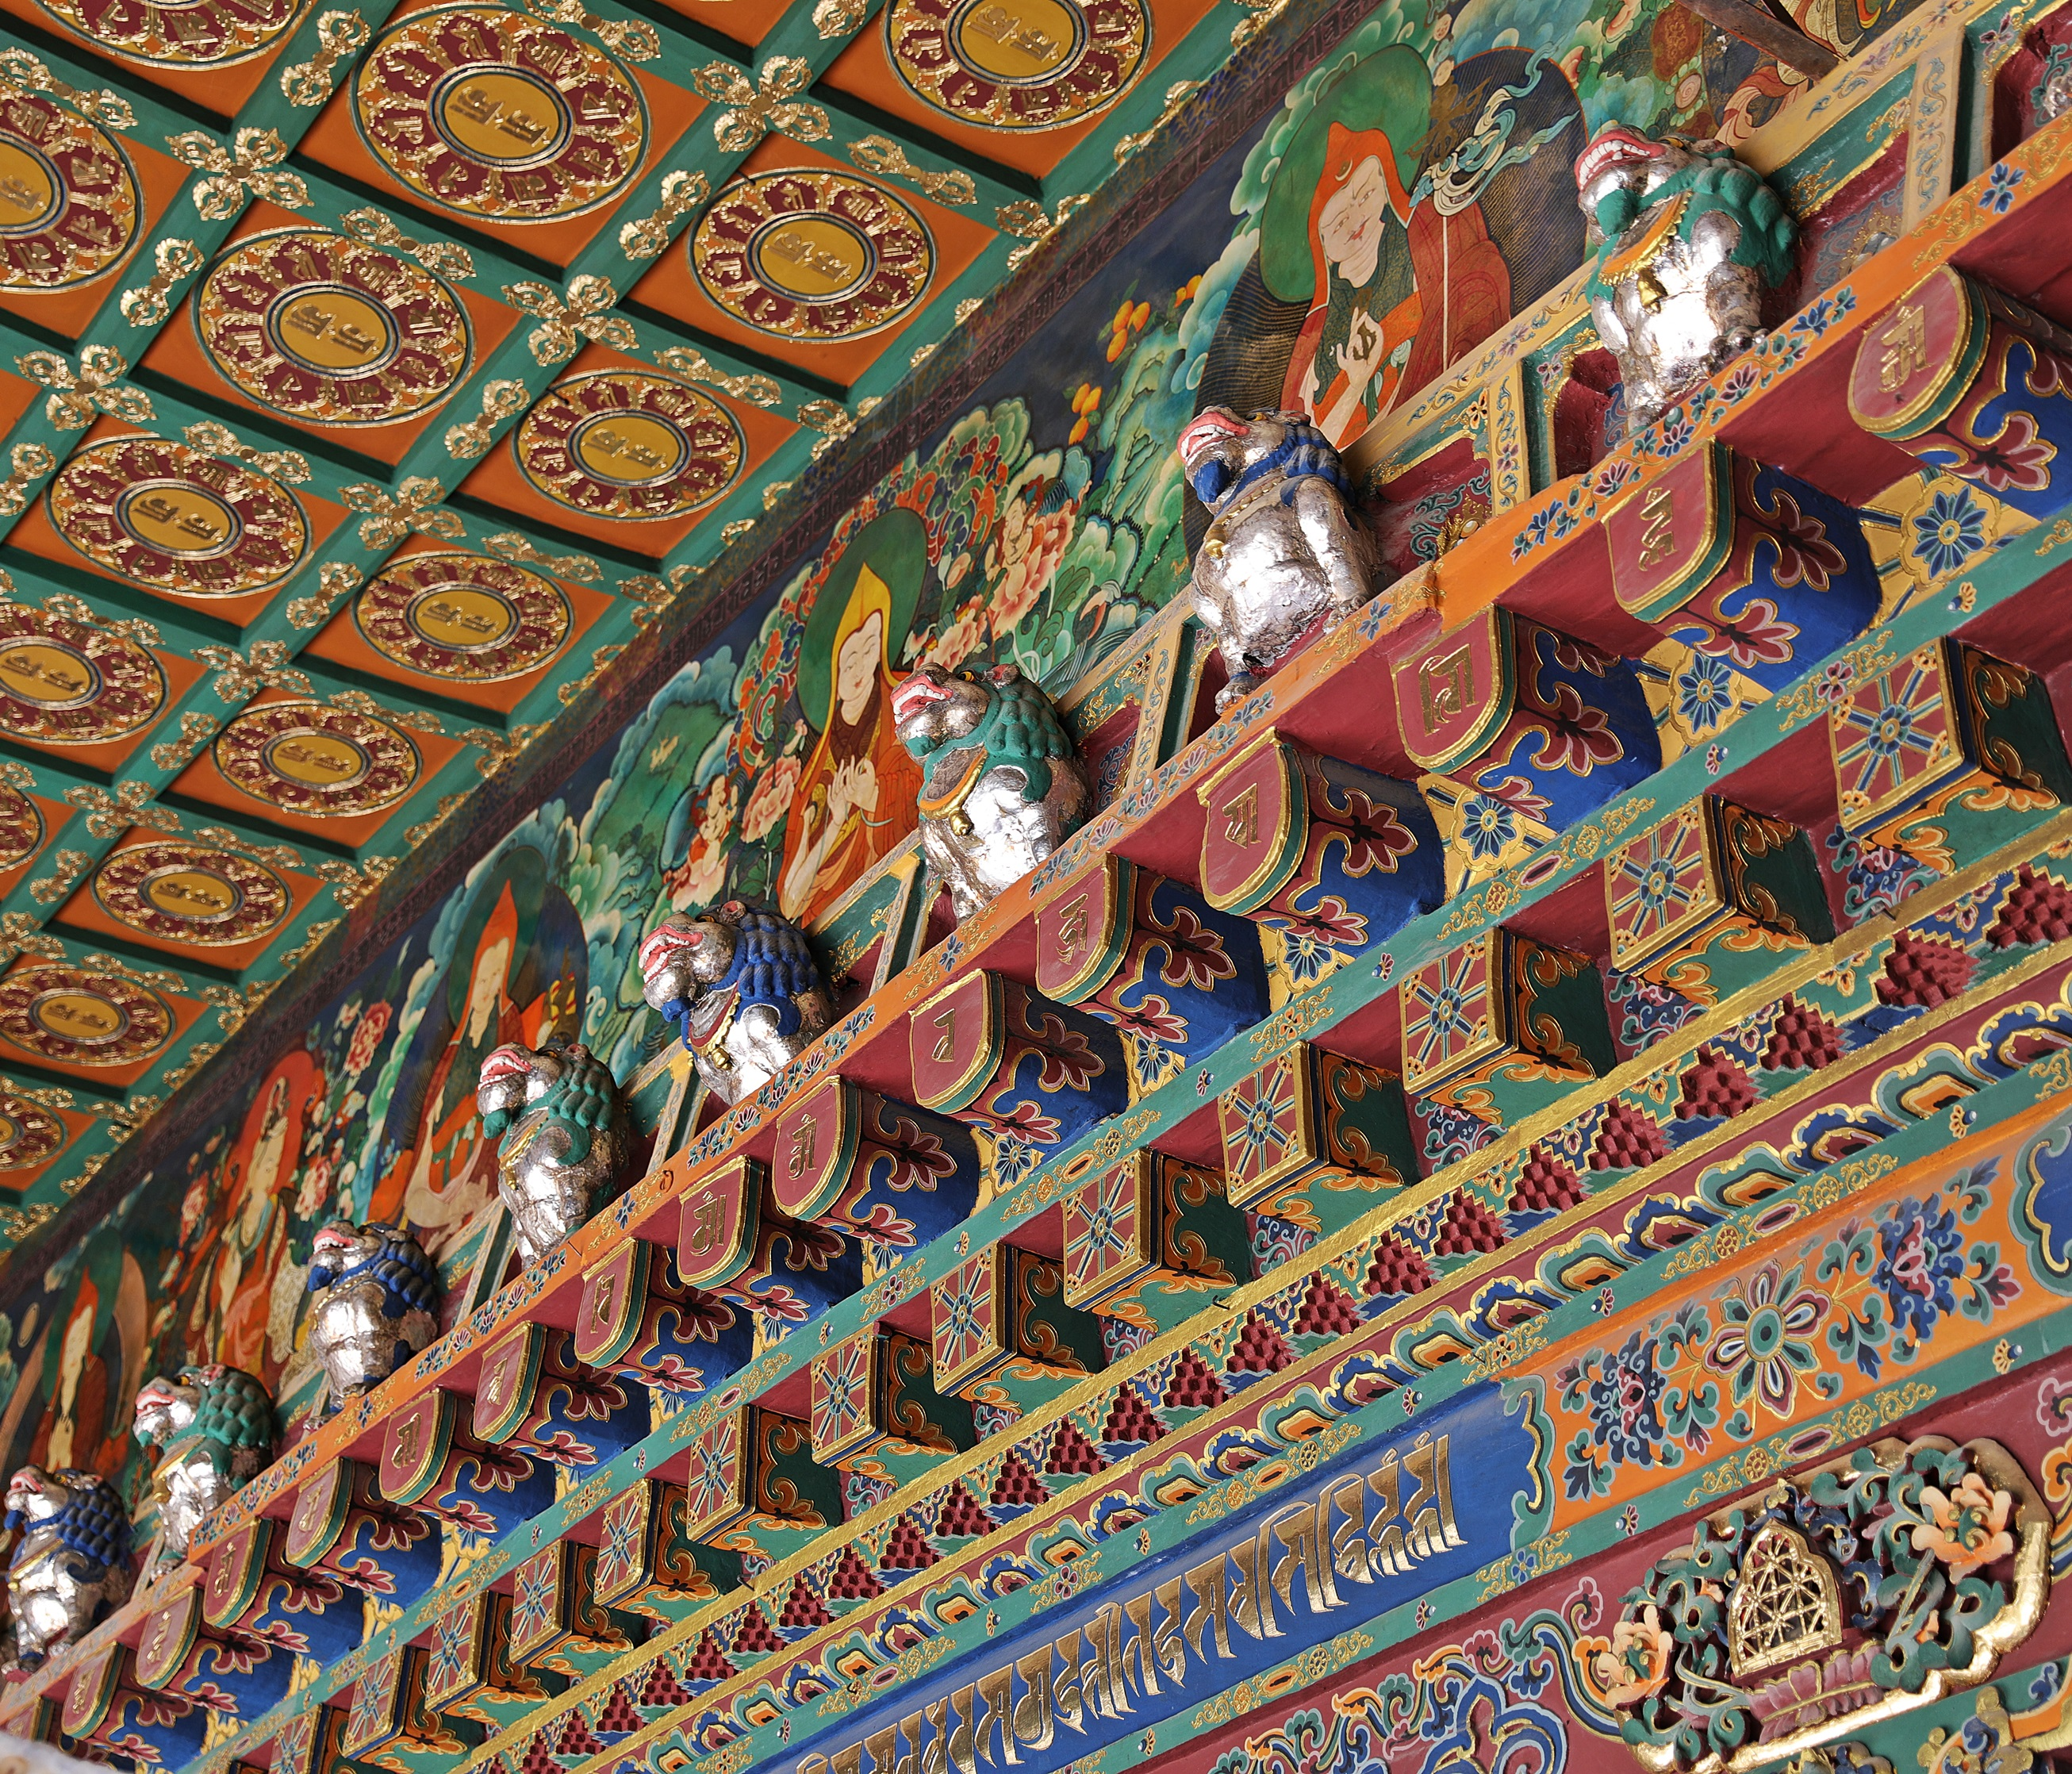 Ceiling in Jokhang Temple